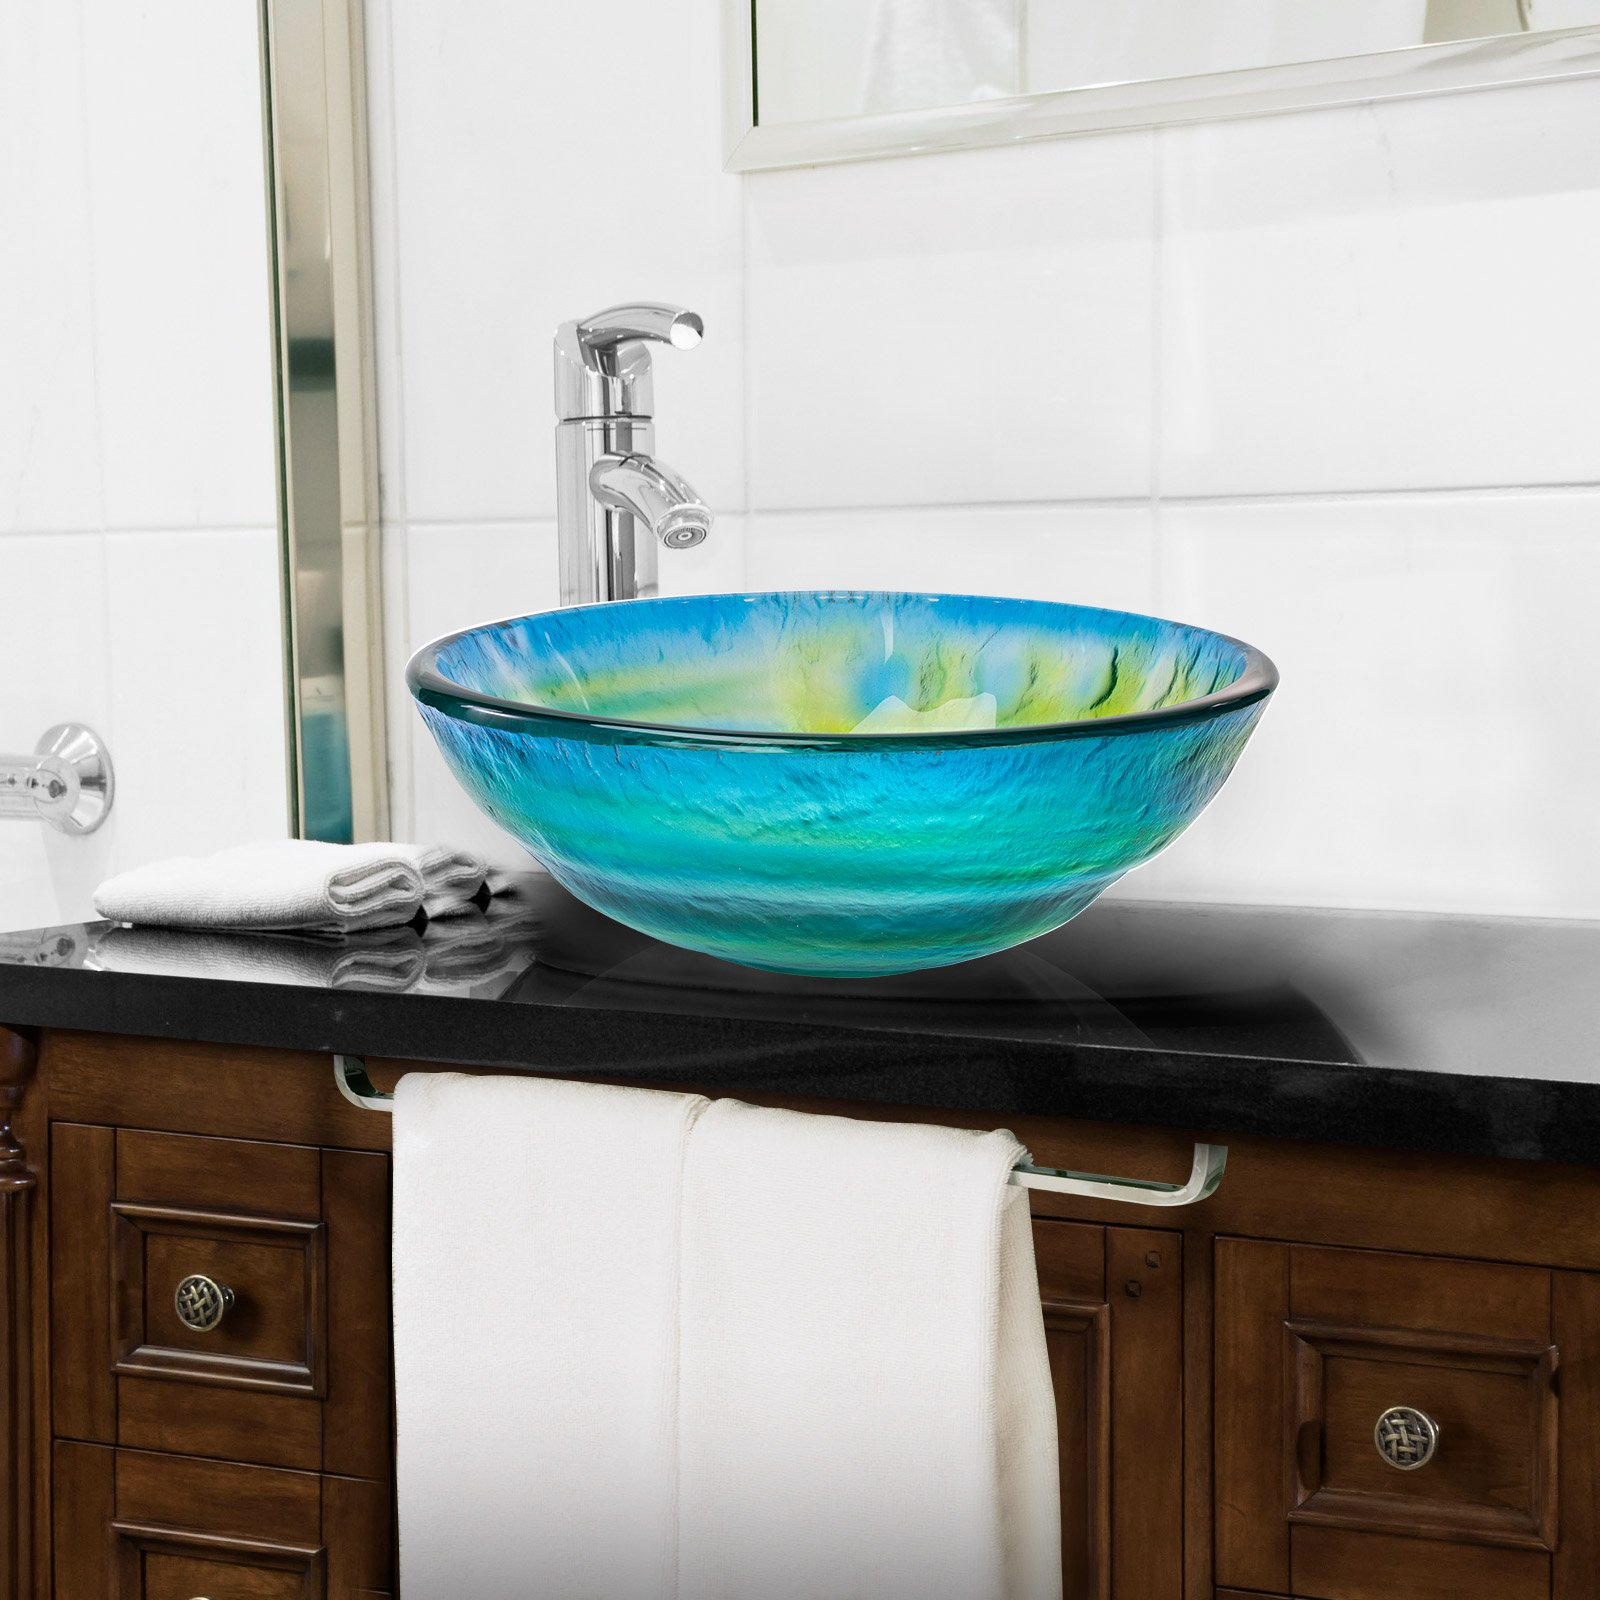 Miligoré Modern Glass Vessel Sink - Above Counter Bathroom Vanity ...